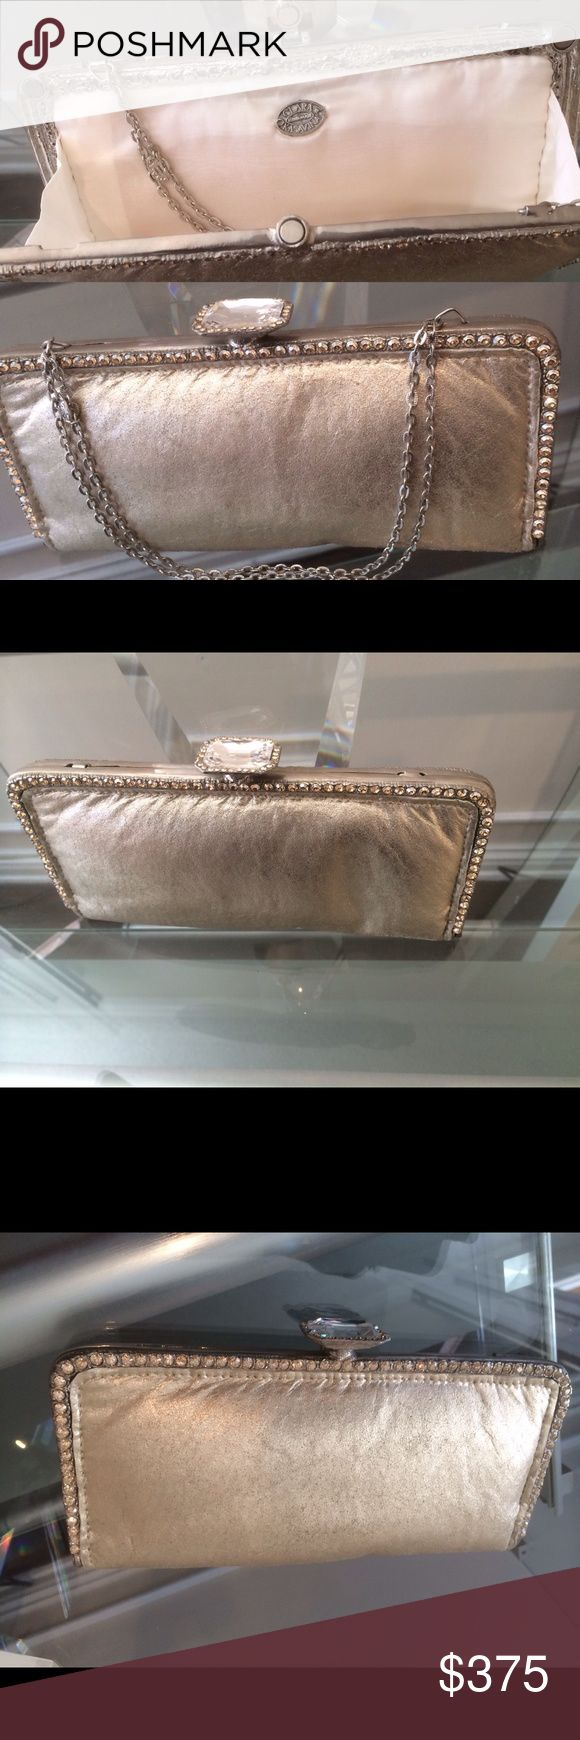 Leather crystal evening bag Exquisite gold lamb leather evening bag adorn with gold crystals can be worn as a clutch or with a chain handle. Designed by  luxury designer Clara Kasavina Clara Kasavina Bags